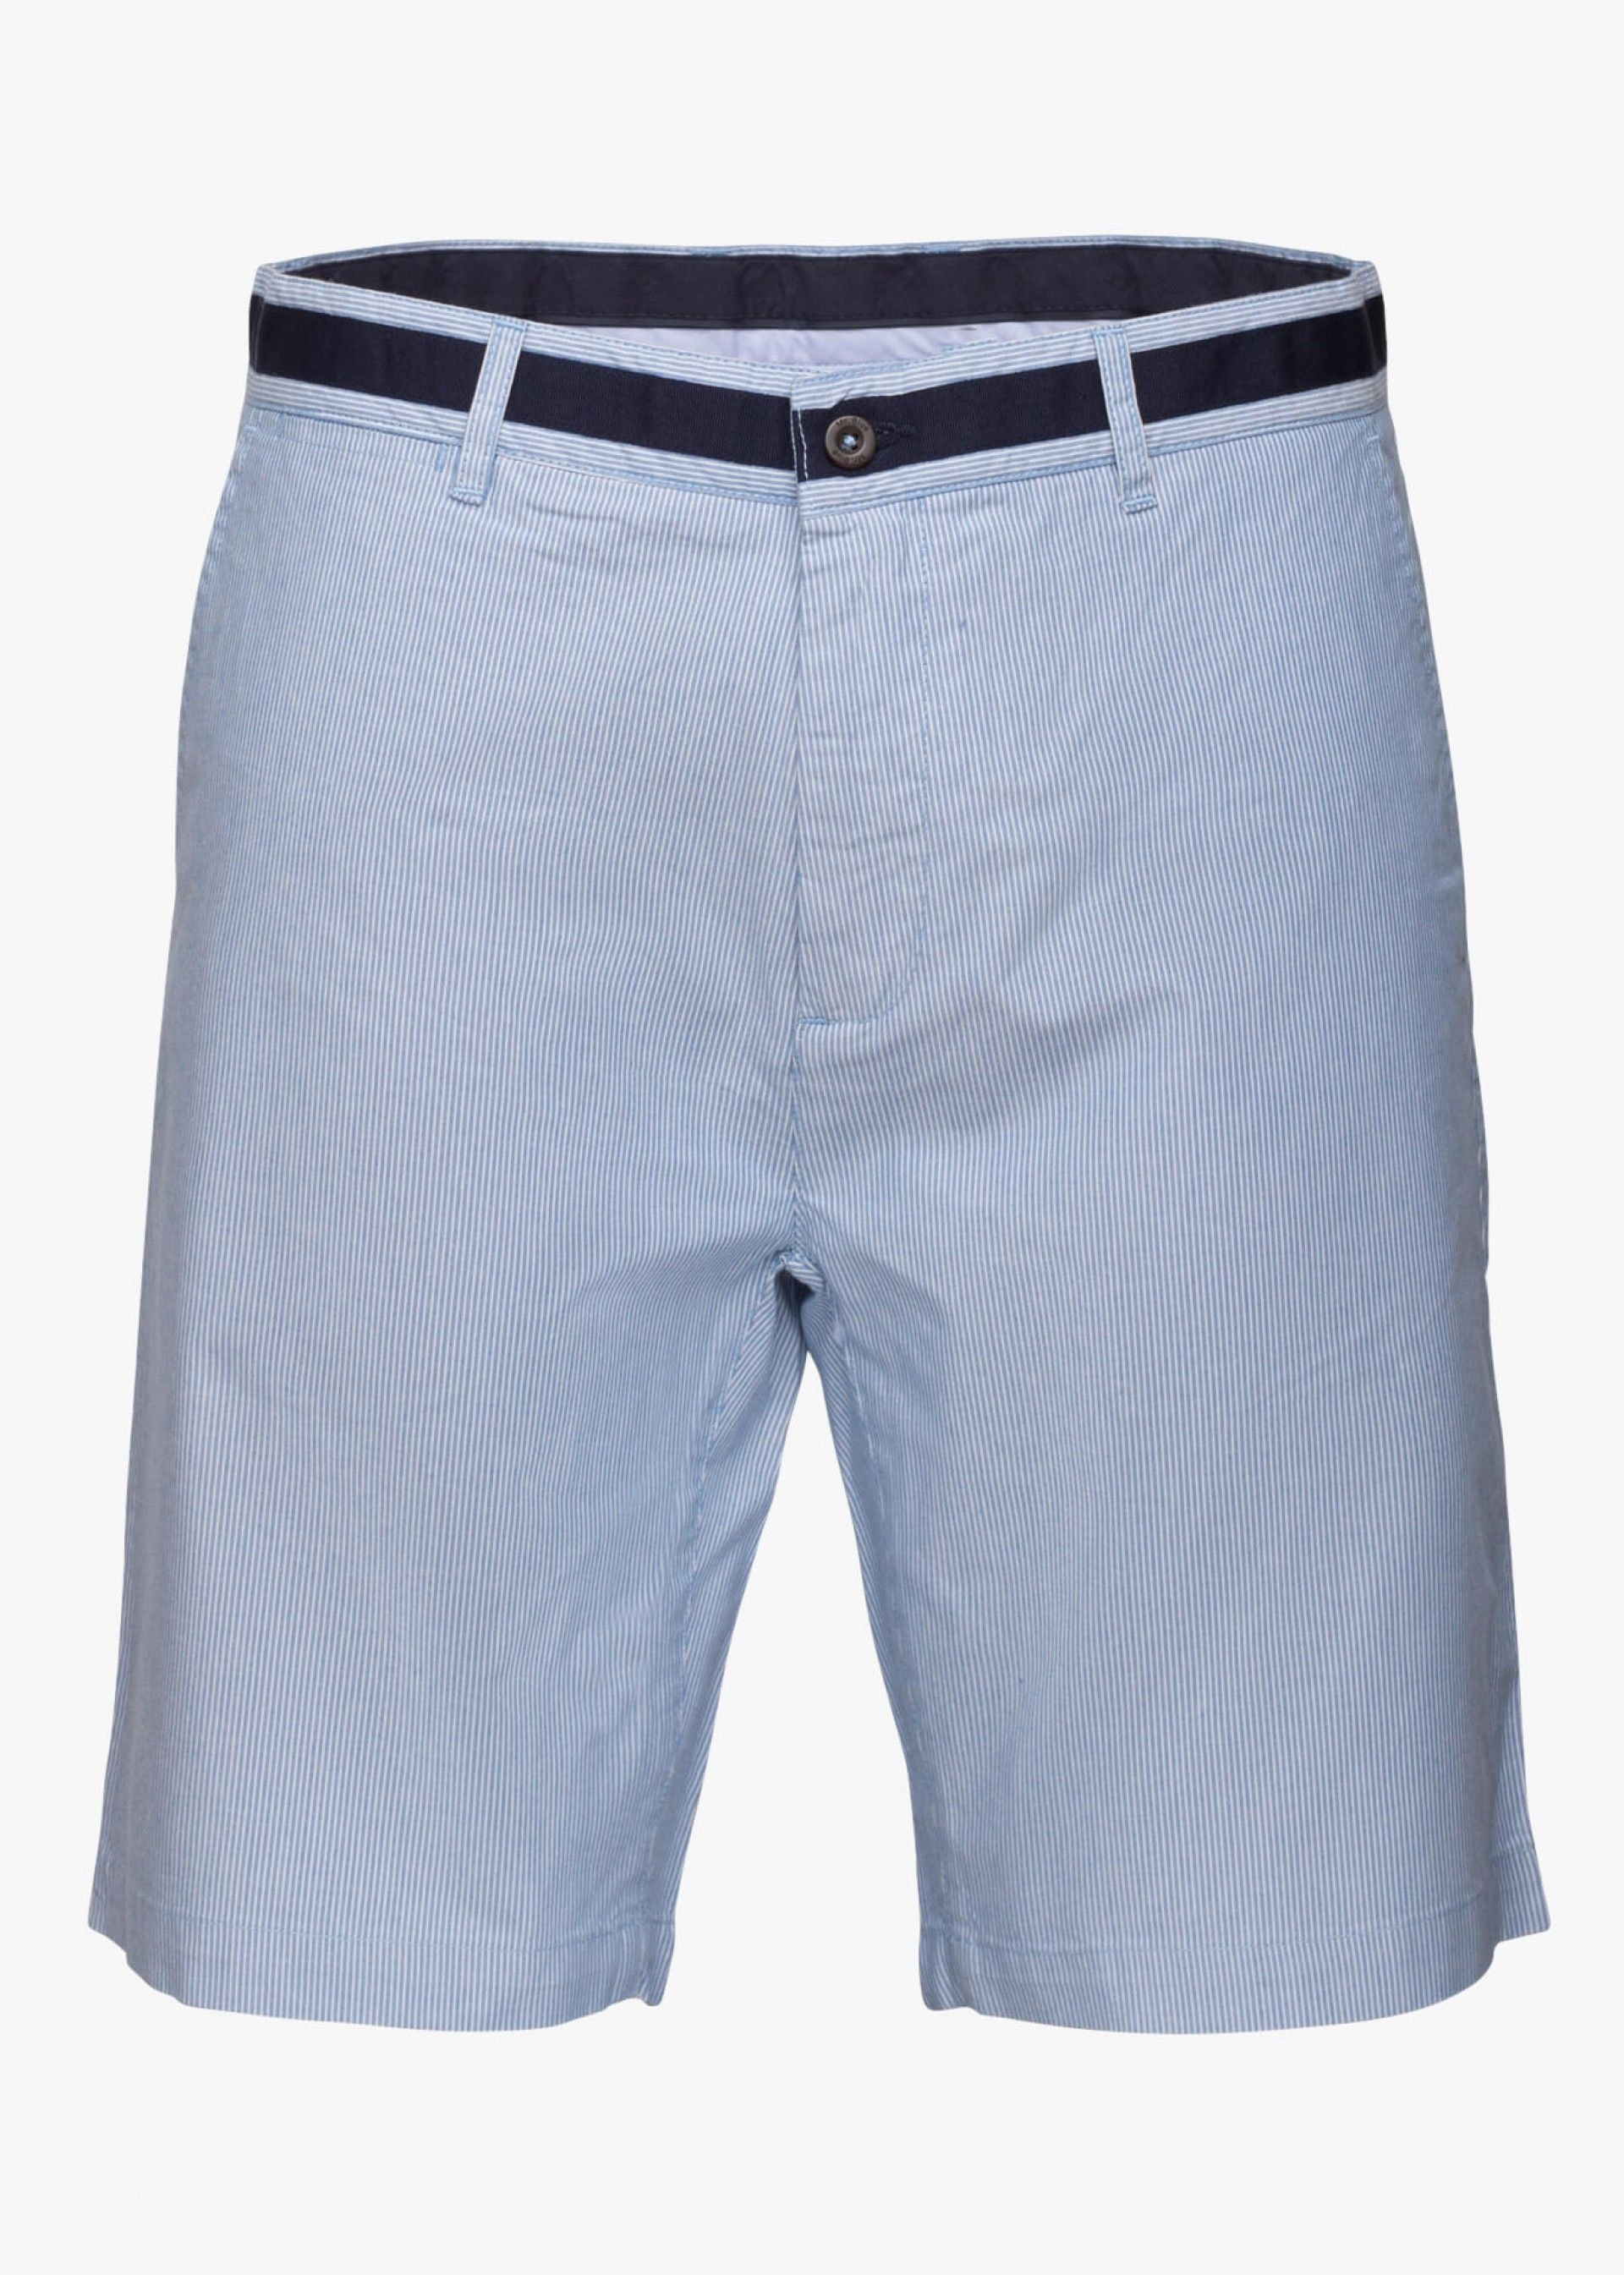 Bermudas, Mr. Blue, 39,99€